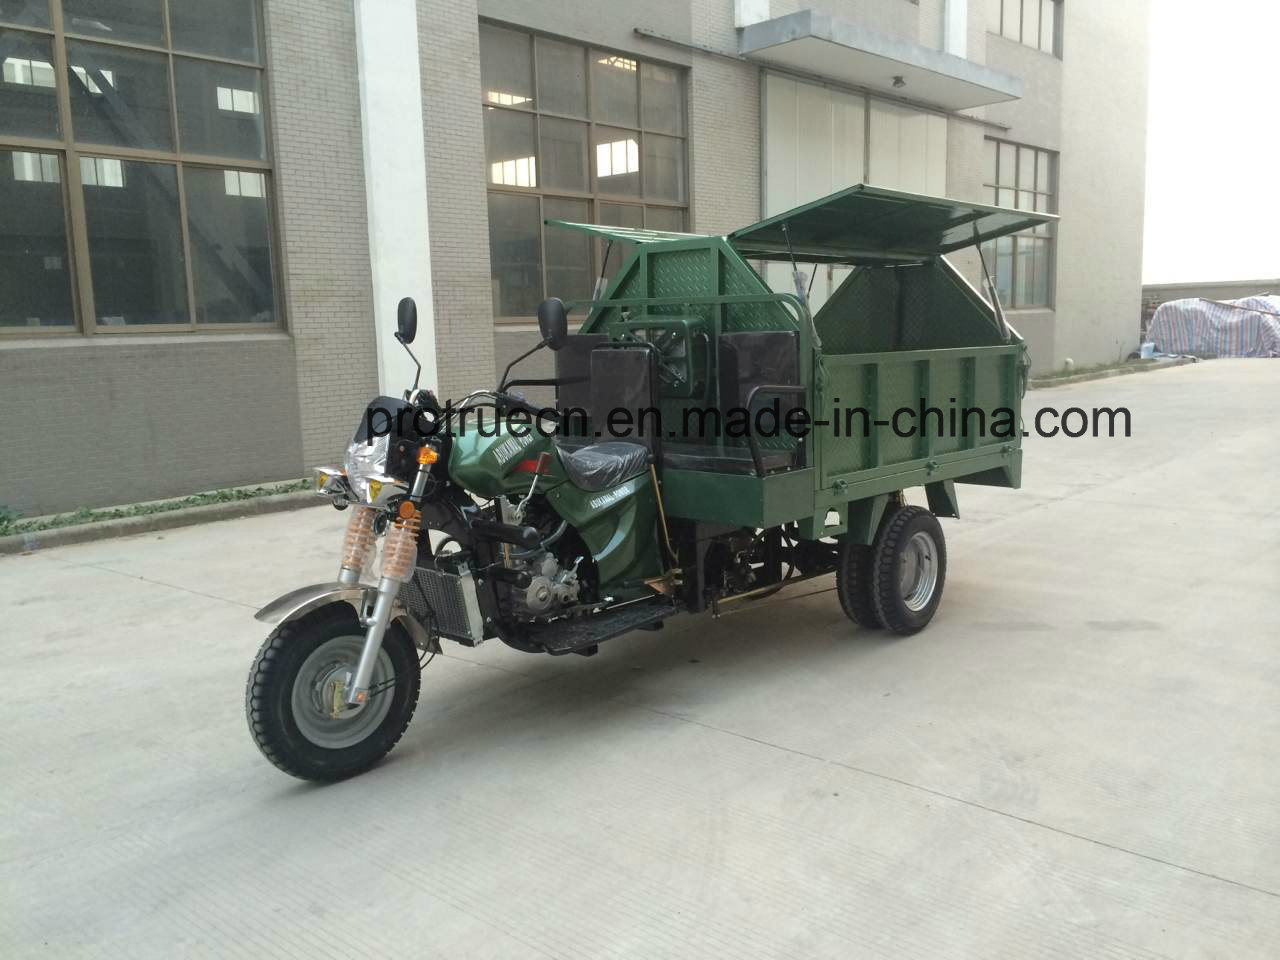 250cc Powerful Garbage Tricycle with Hydraulic Pump 2 Ton